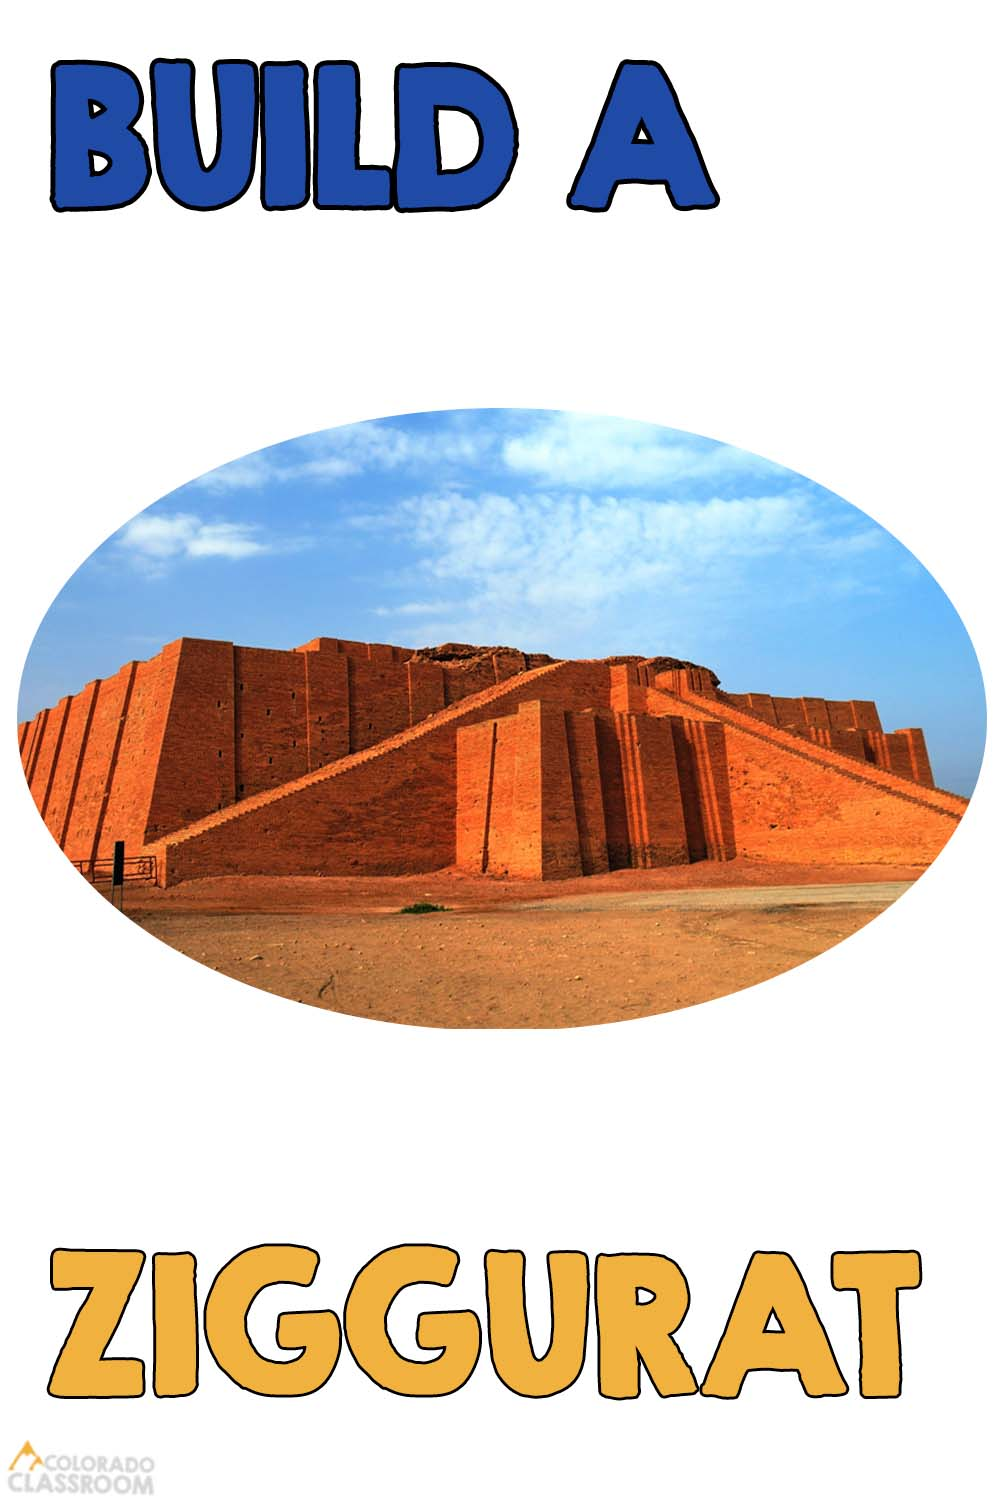 """A picture of an ancient ziggurat in an oval frame with the text """"Build a Ziggurat"""" on top and the """"Colorado Classroom"""" logo in the bottom left corner."""